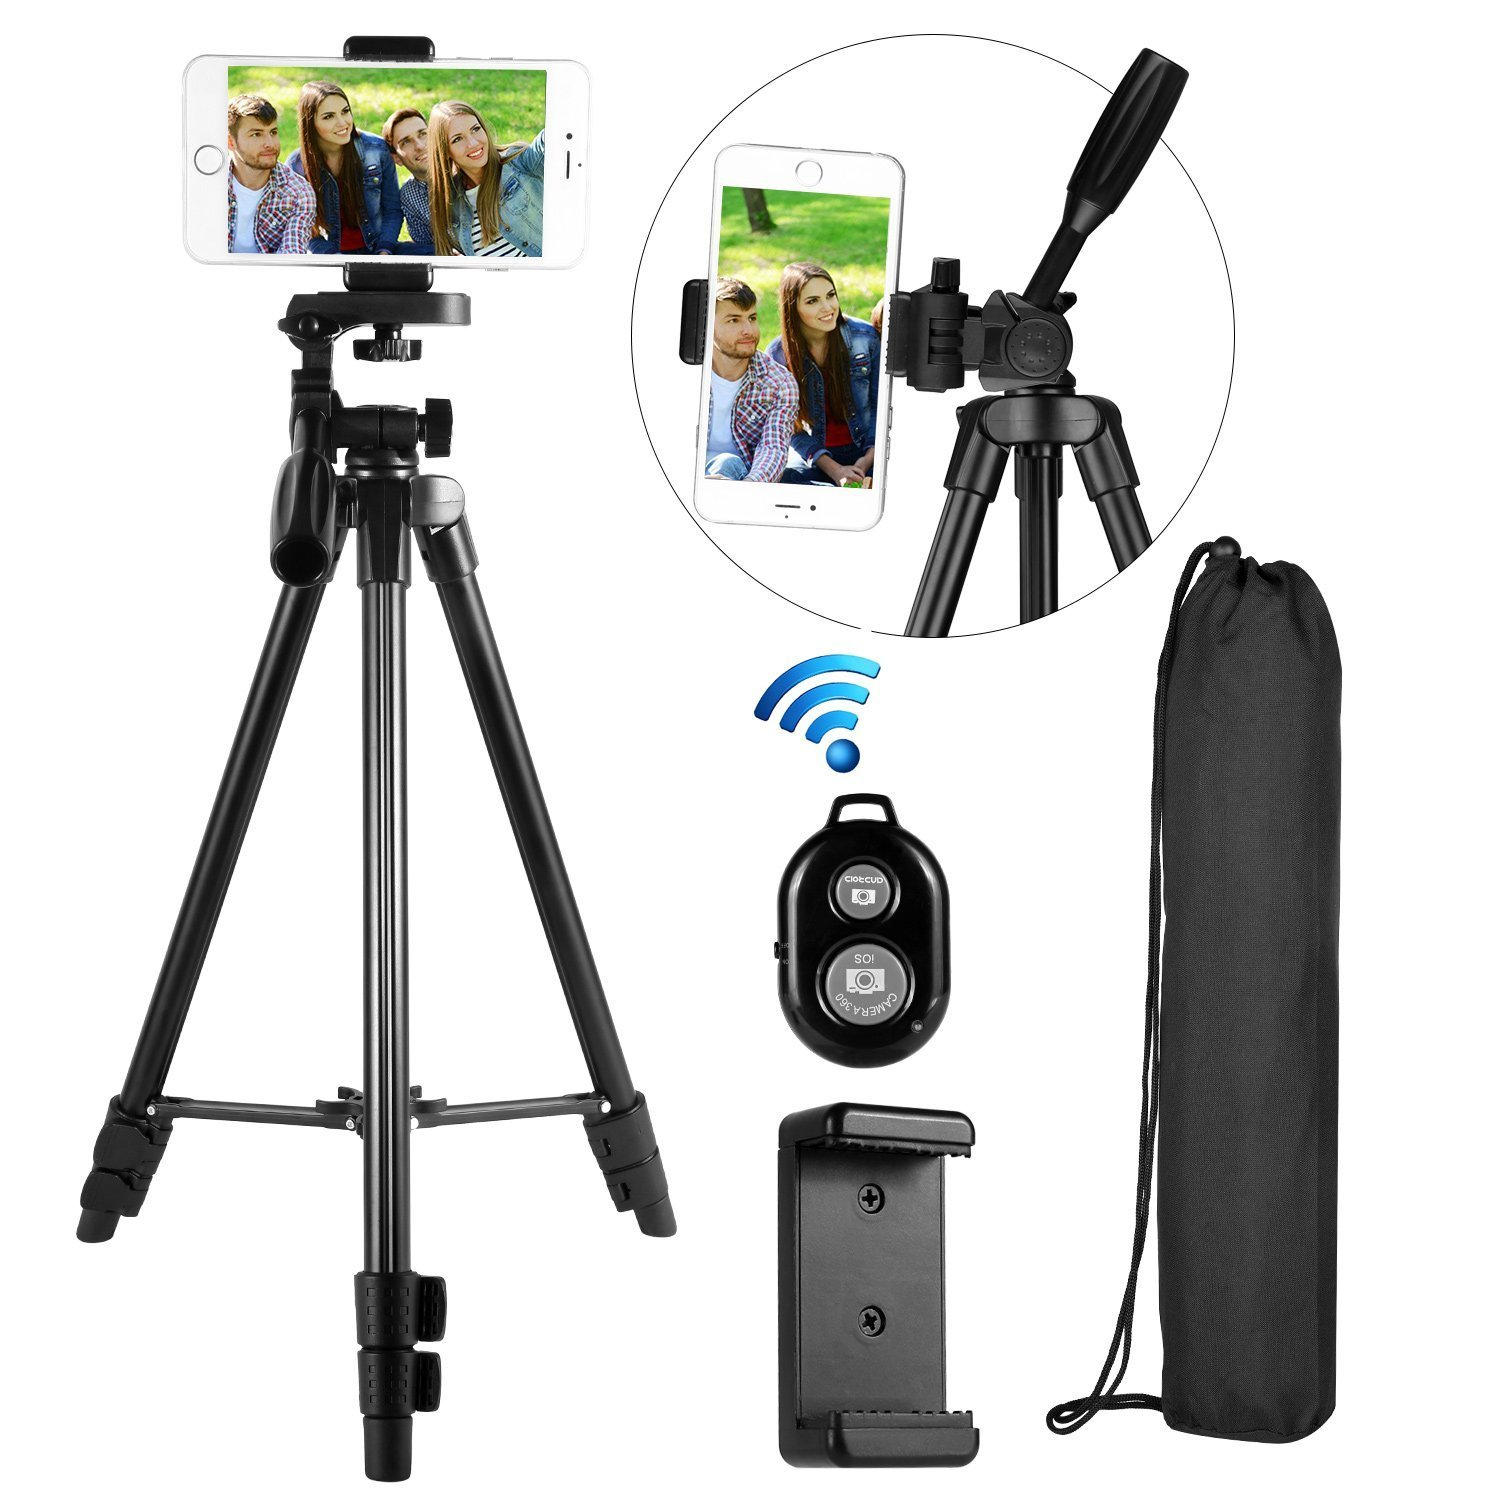 Phone Smartphone Cellphone Stand Tripod,37-inch Lightweight Aluminum Tripod for Phone, Video Camera Tipod,Wireless Remote + Cellphone Holder Mount +Carrying Bag Compatible with iPhone, Samsung, etc